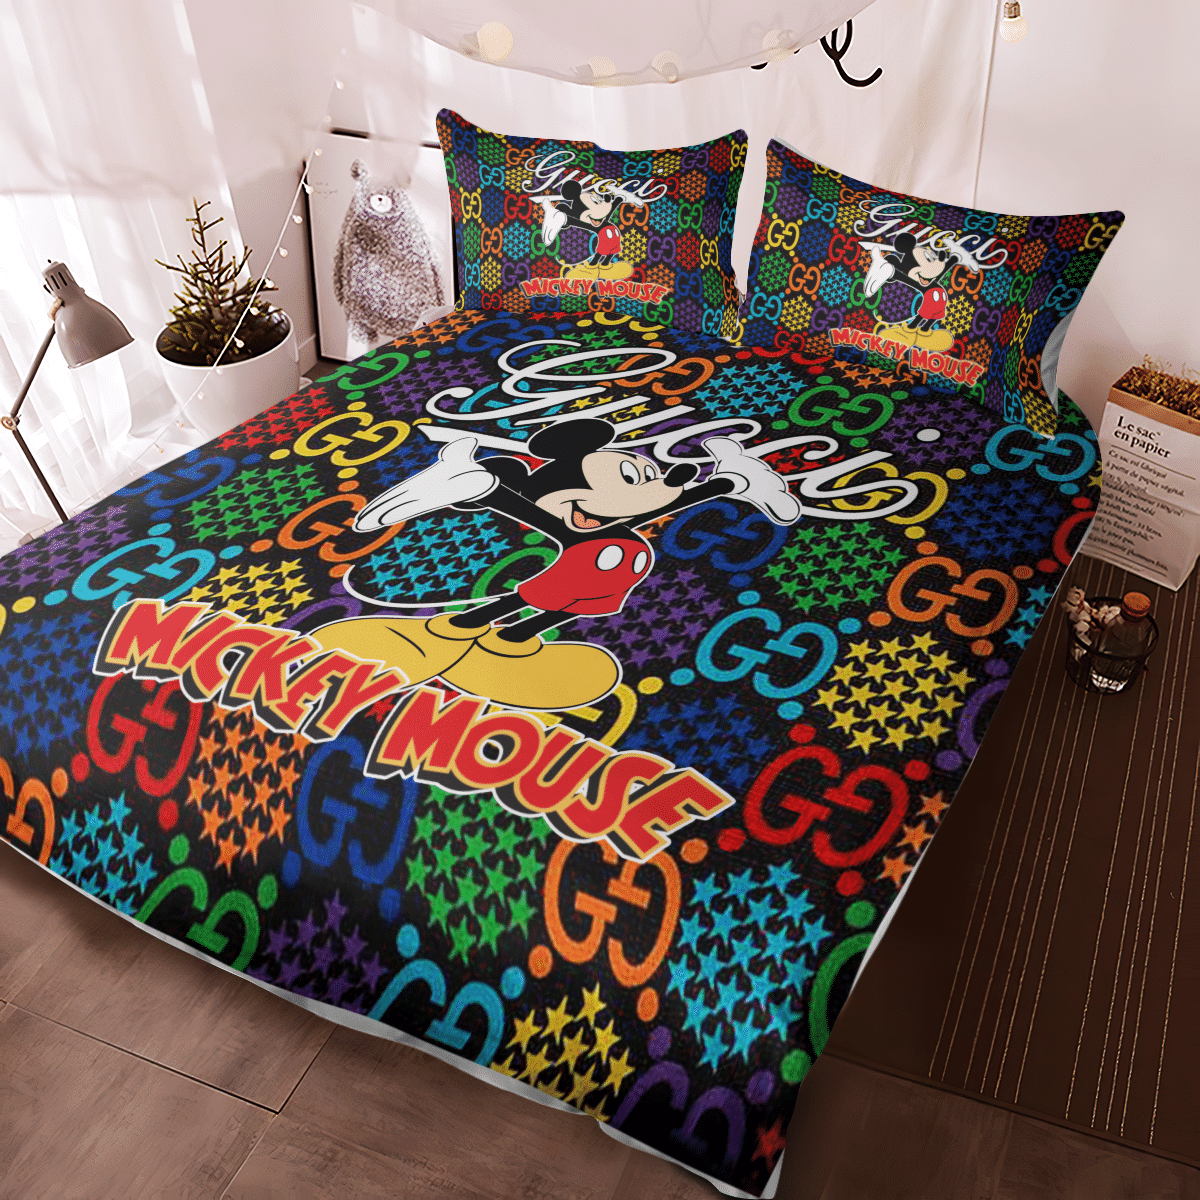 Mickey Mouse Gucci bedding set - LIMITED EDITION